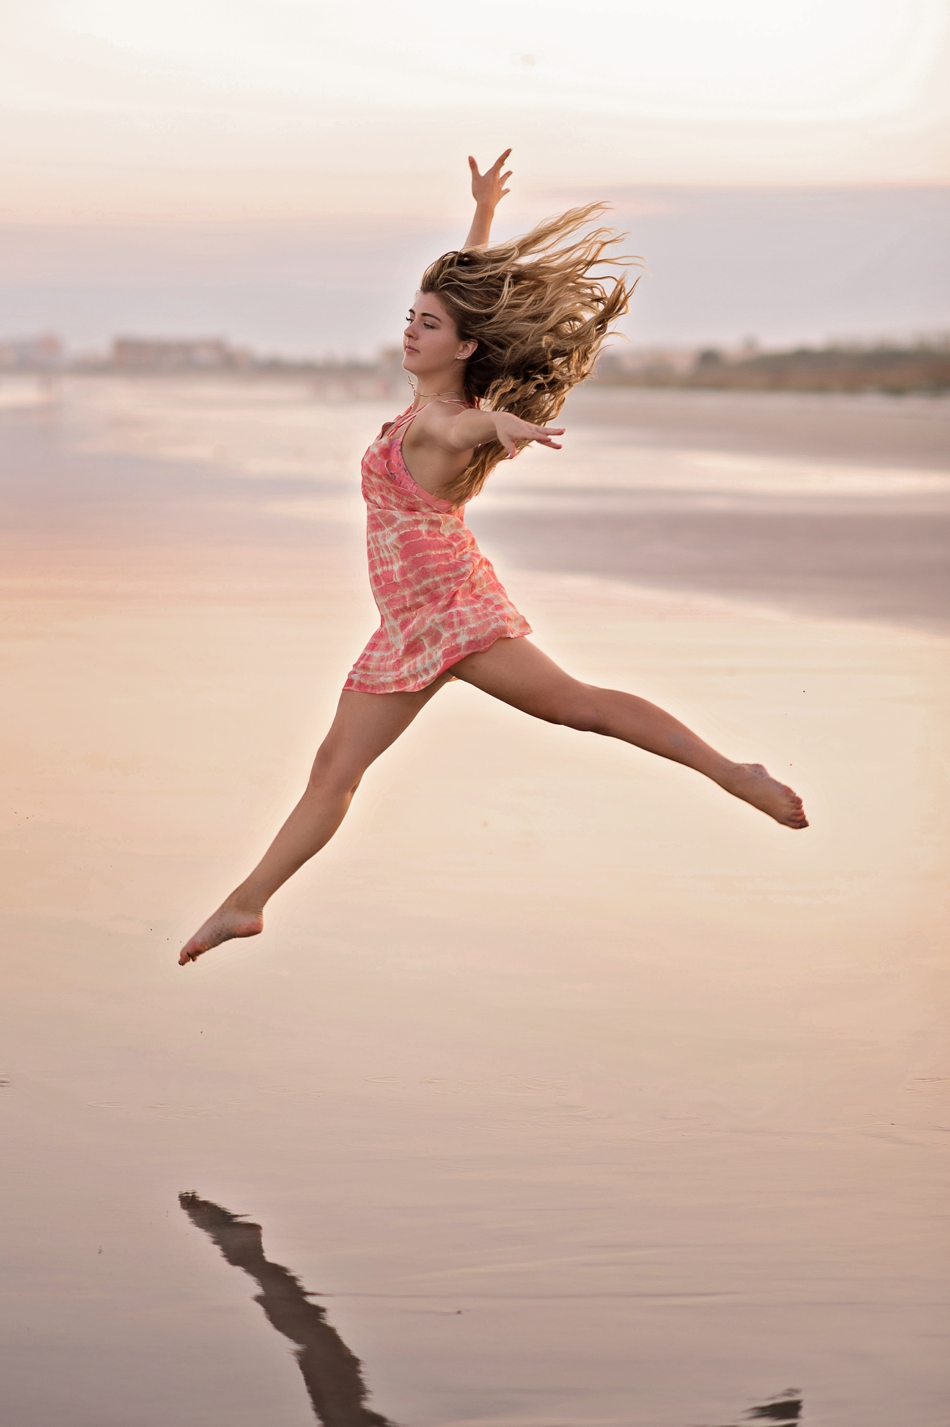 amazing dance photo - senior dancer on beach